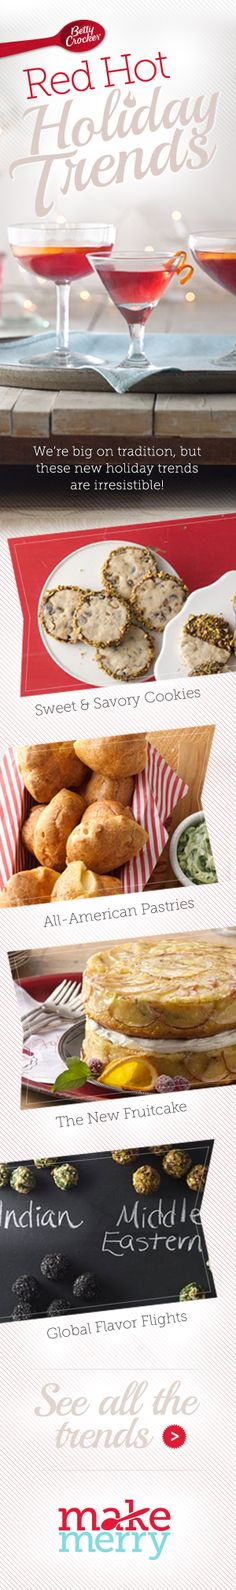 Betty Crocker's 2013 Red Hot Holiday Trends